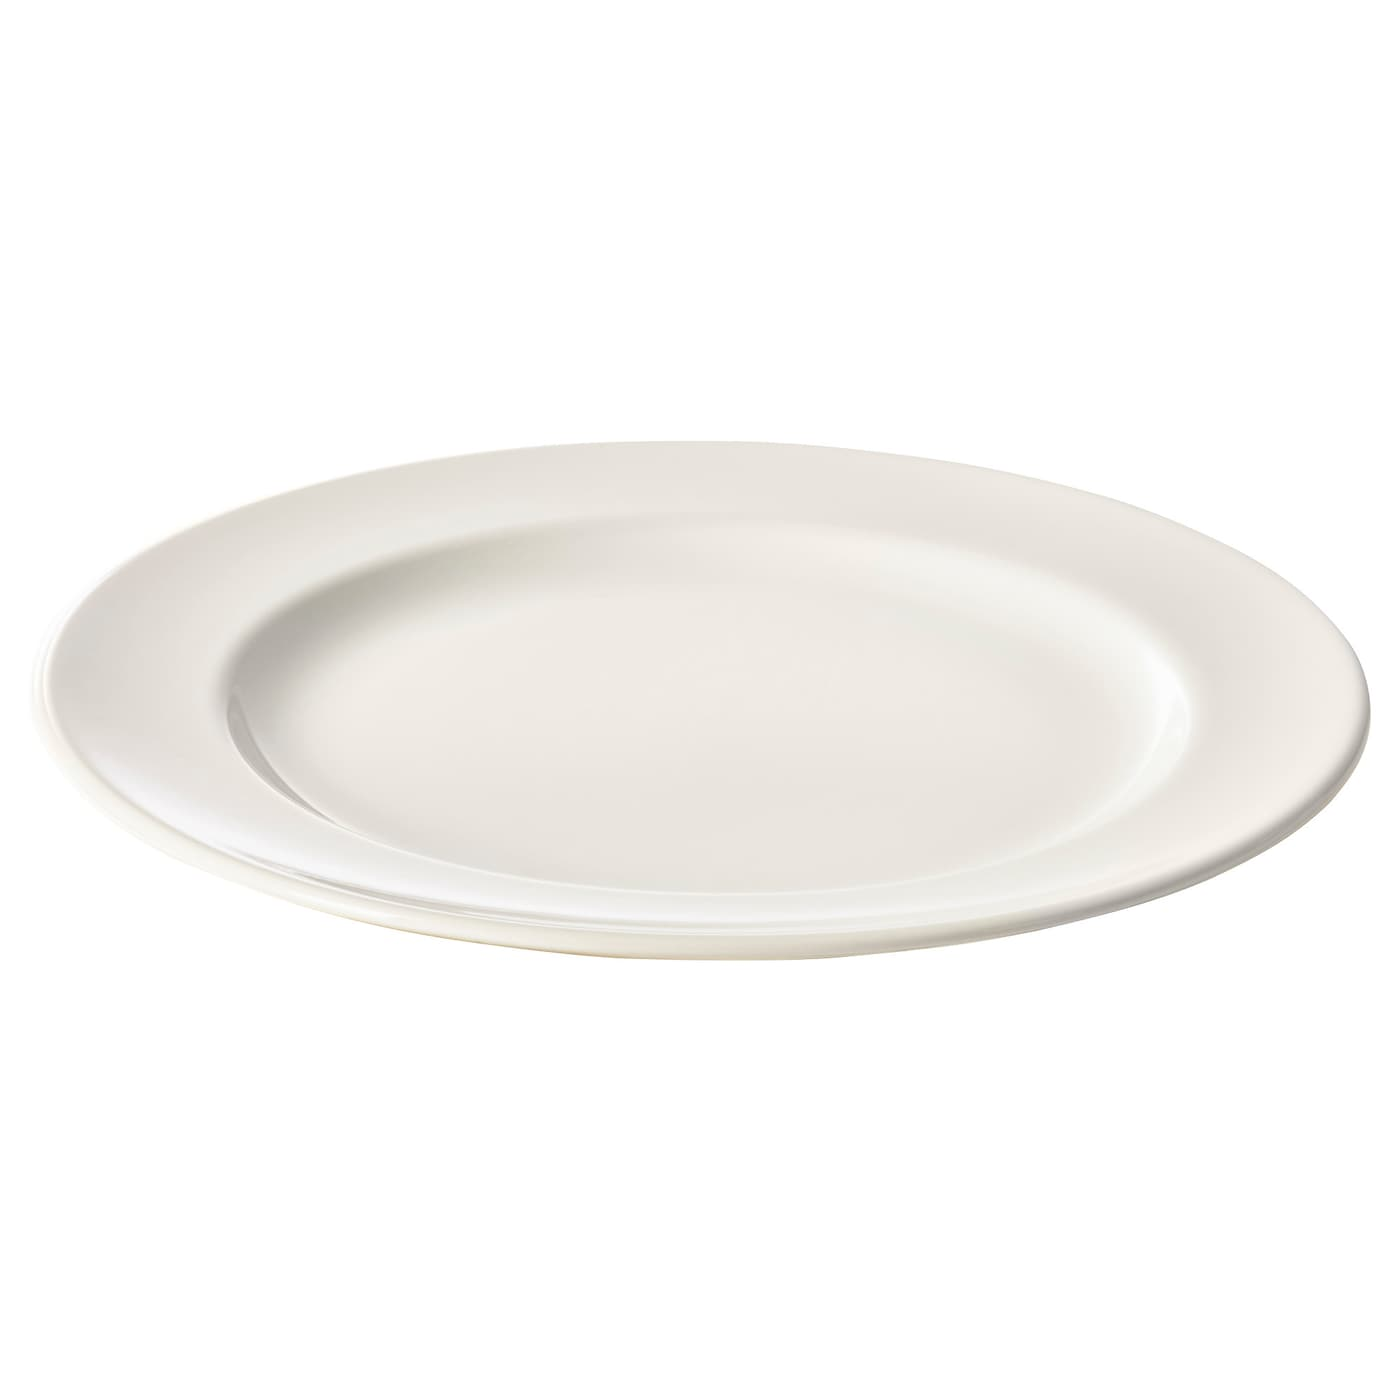 Vardagen plate off white 26 cm ikea for Plain white plates ikea